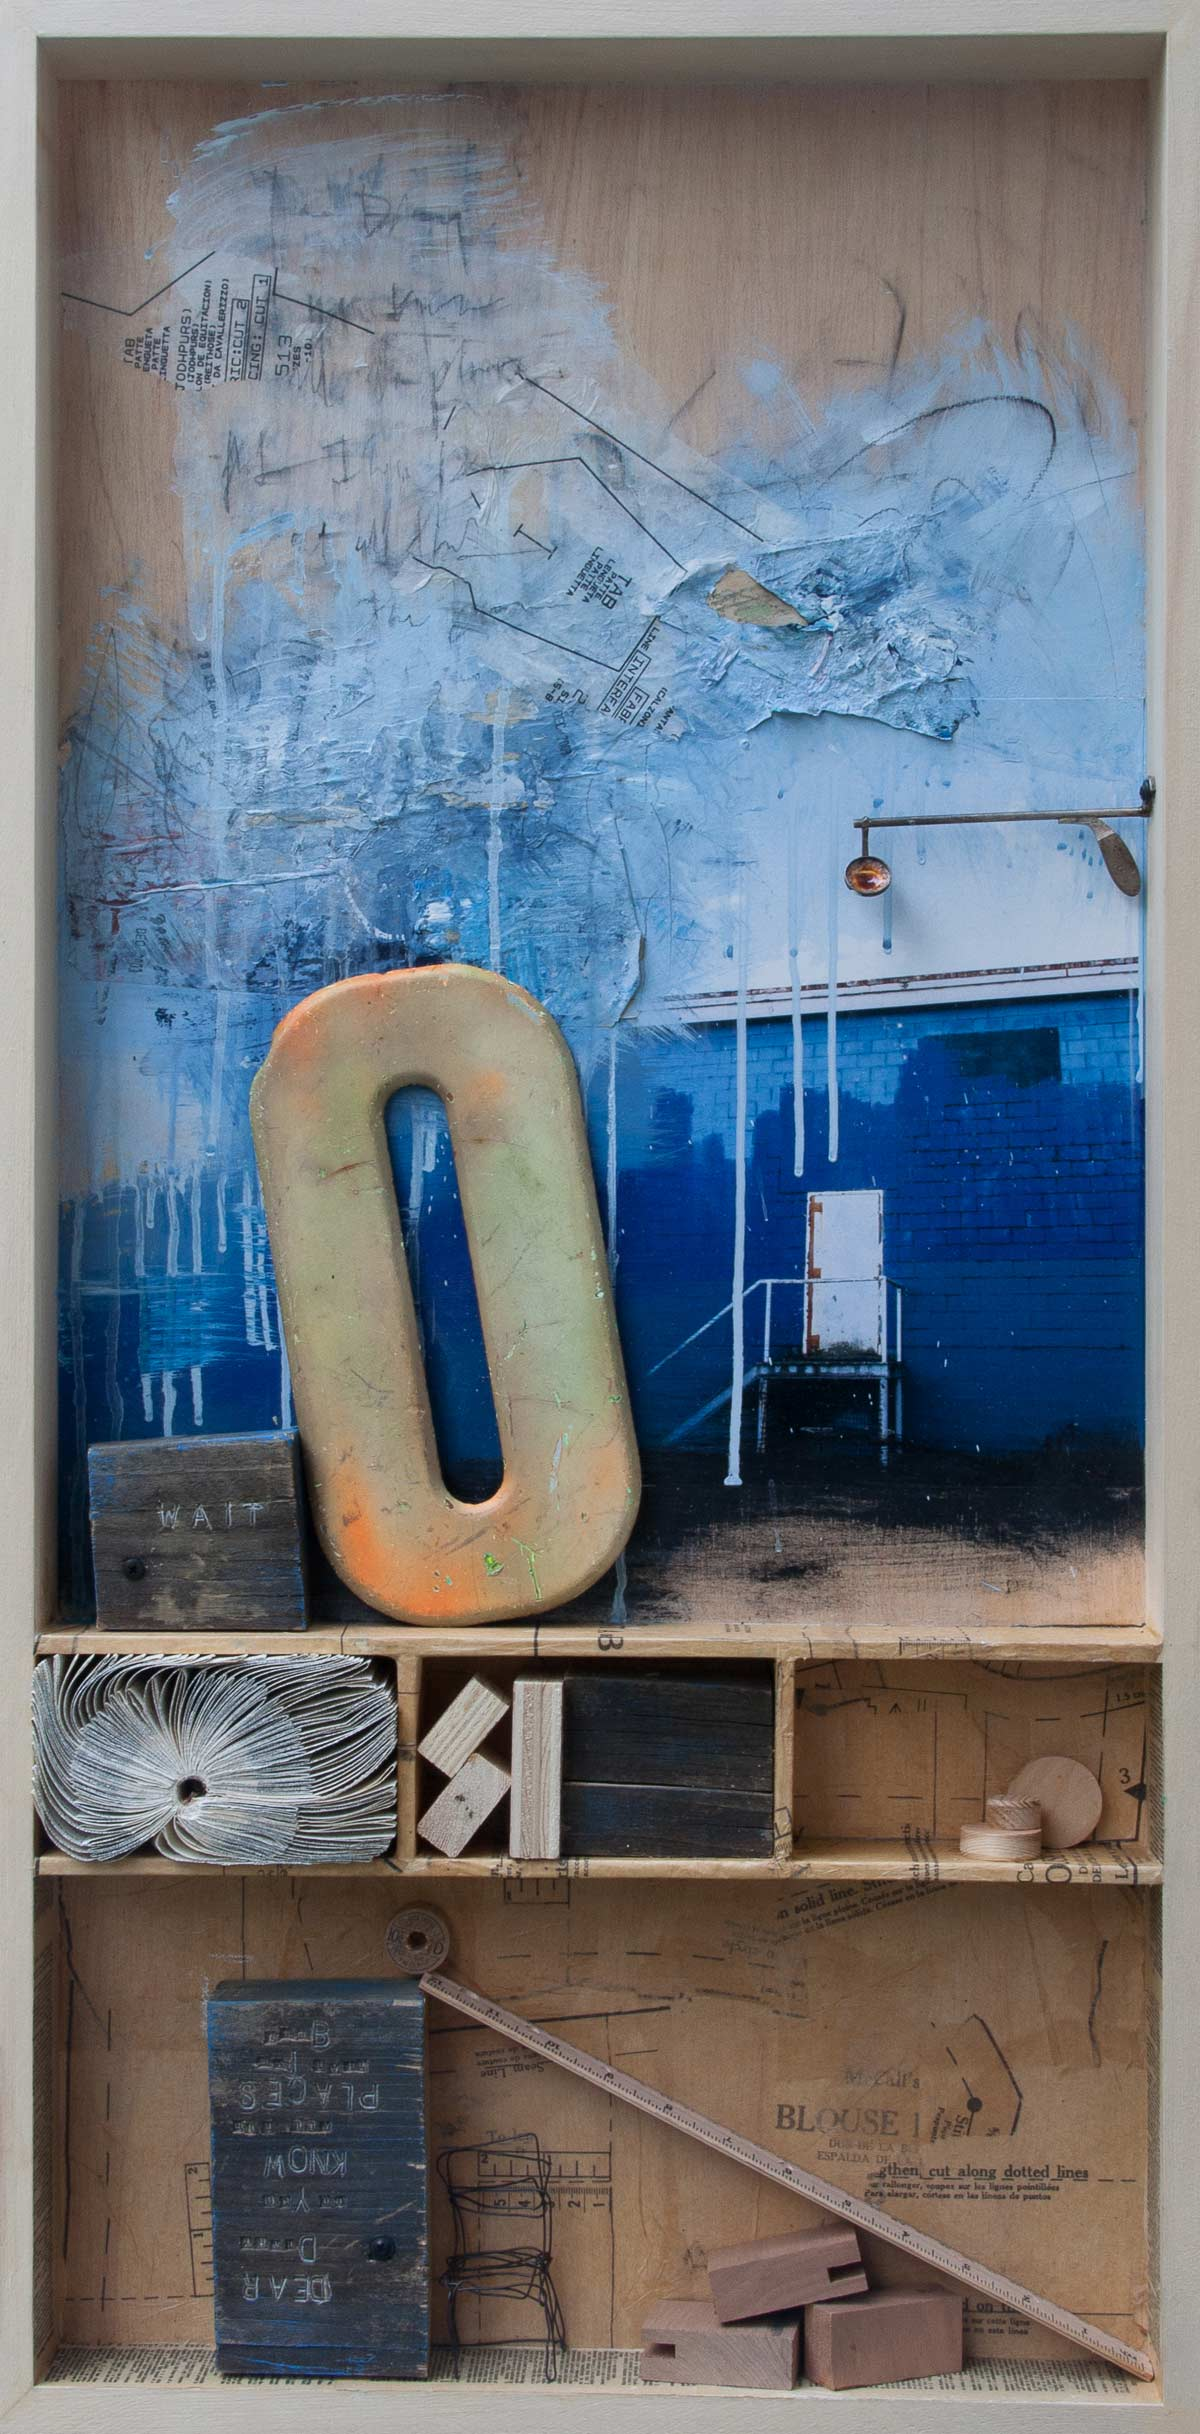 "Missed Messages, 2015, mixed media on wood, 18"" x 36"""